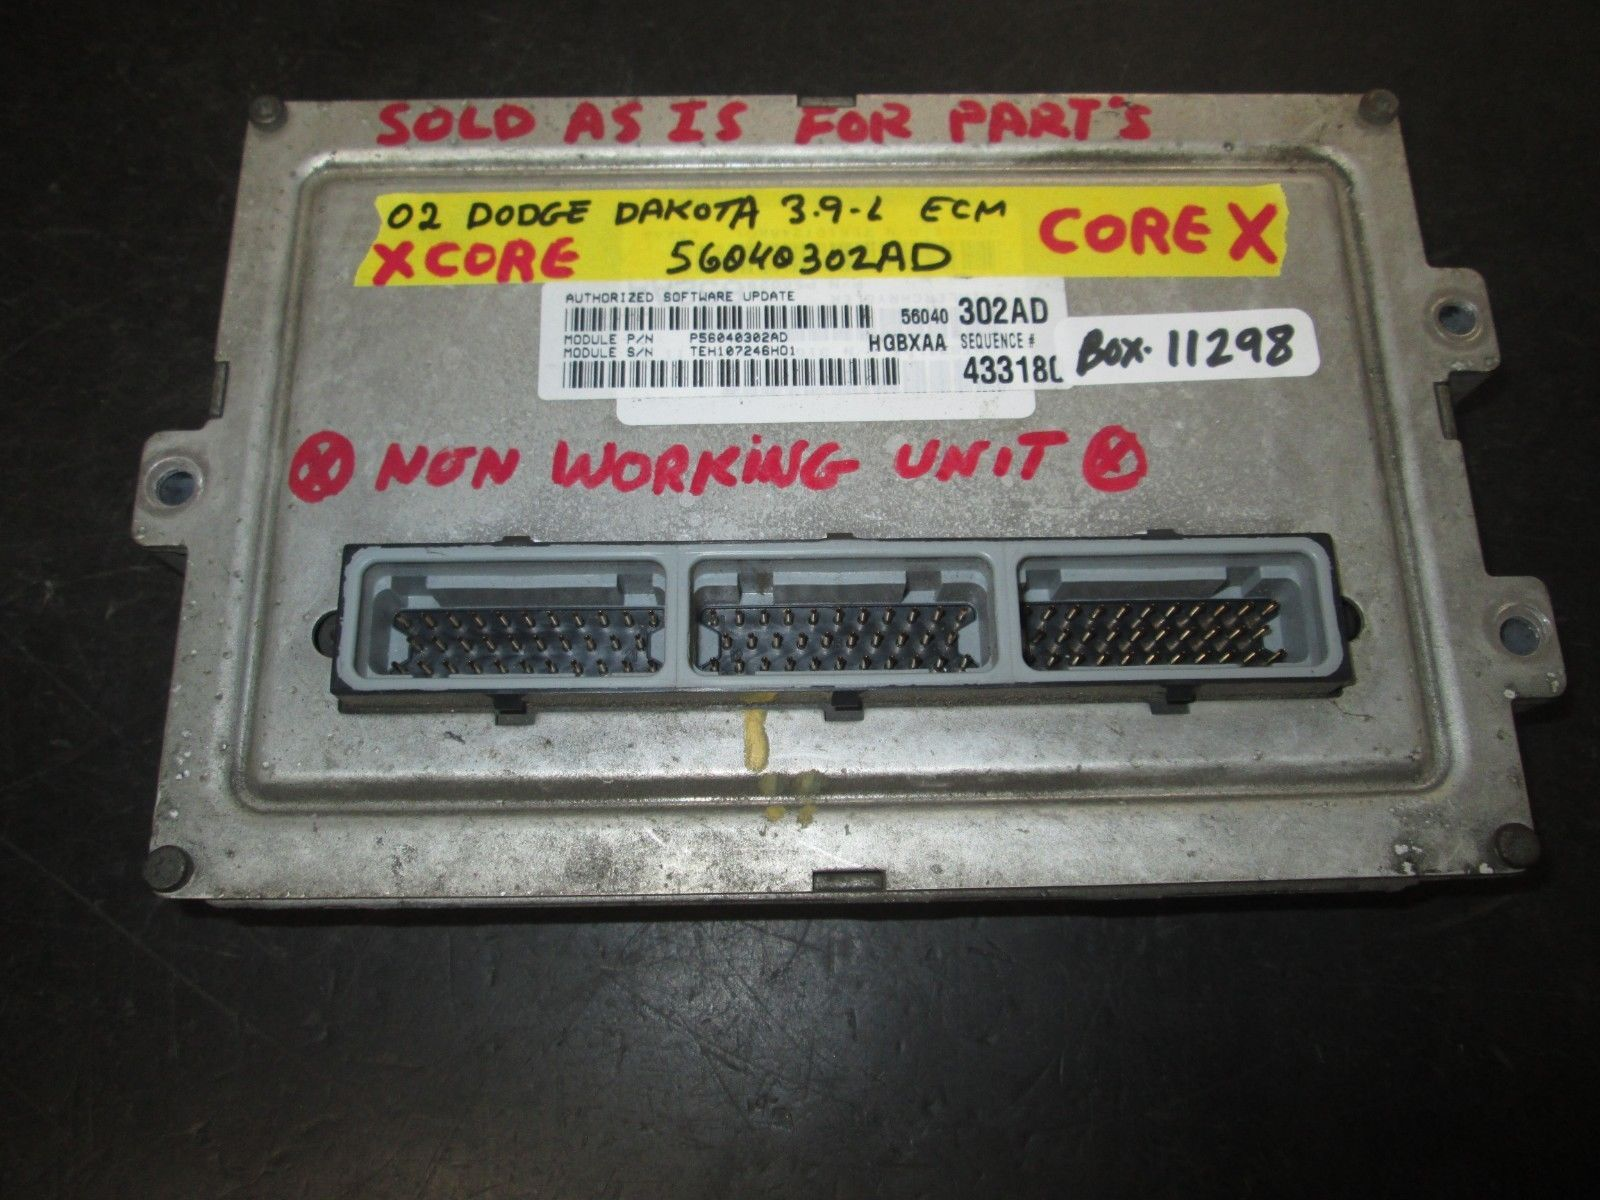 Primary image for 02 DODGE DAKOTA 3.9L ECM #56040302AD SOLD AS IS